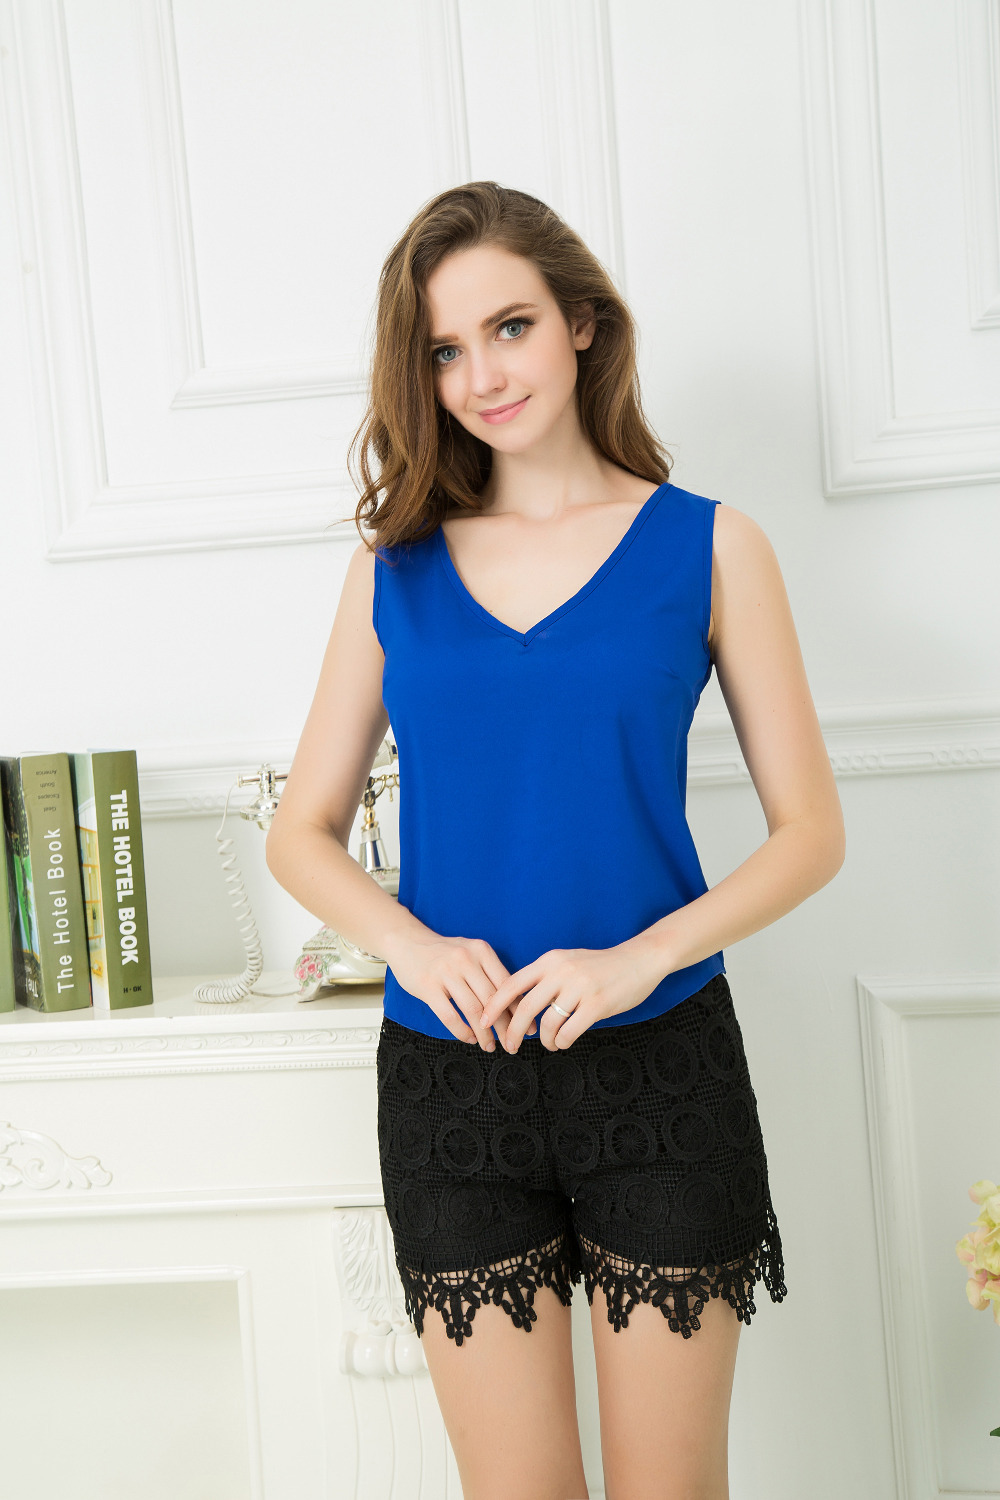 2015 Summer New Arrival Women's V-NECK Casual Sleeveless Vest Polyester Camisole Tank Tops Blouse Shirt(China (Mainland))